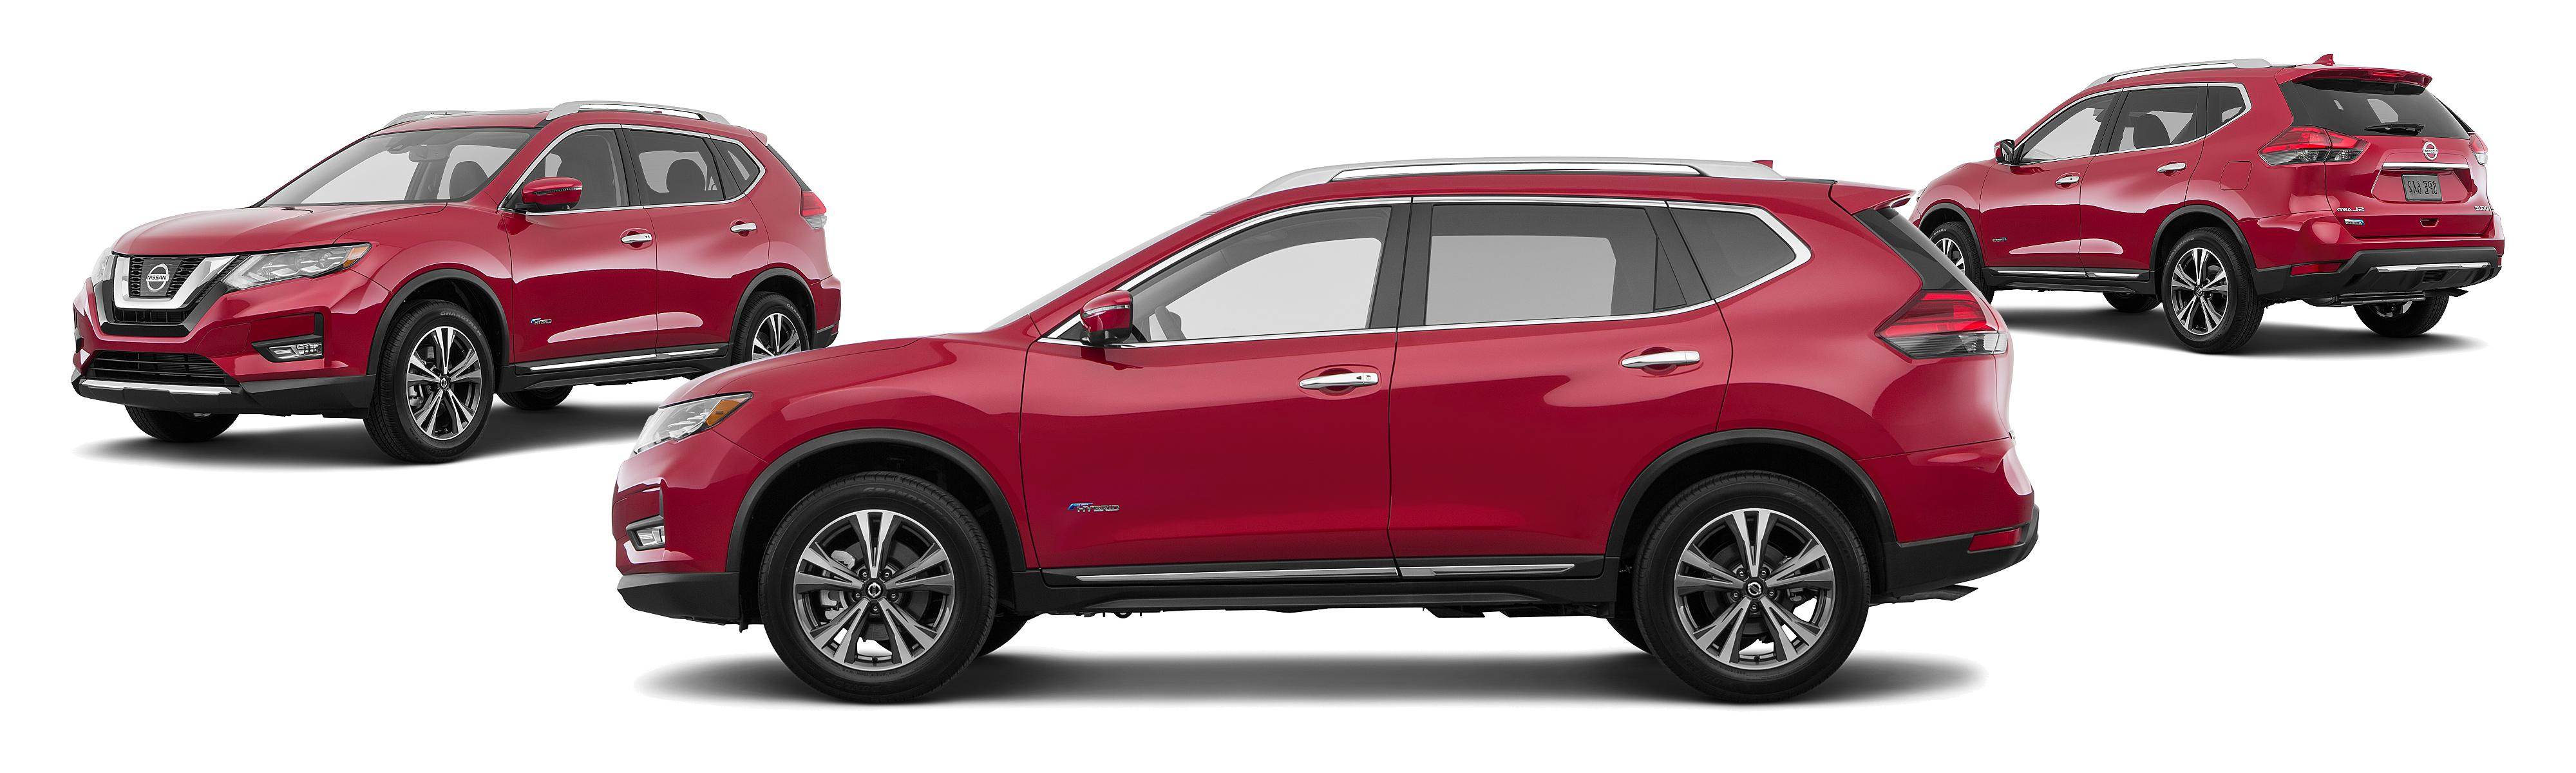 nissan murano 2017 red 28 images new 2017 nissan murano platinum awd for sale in red deer. Black Bedroom Furniture Sets. Home Design Ideas